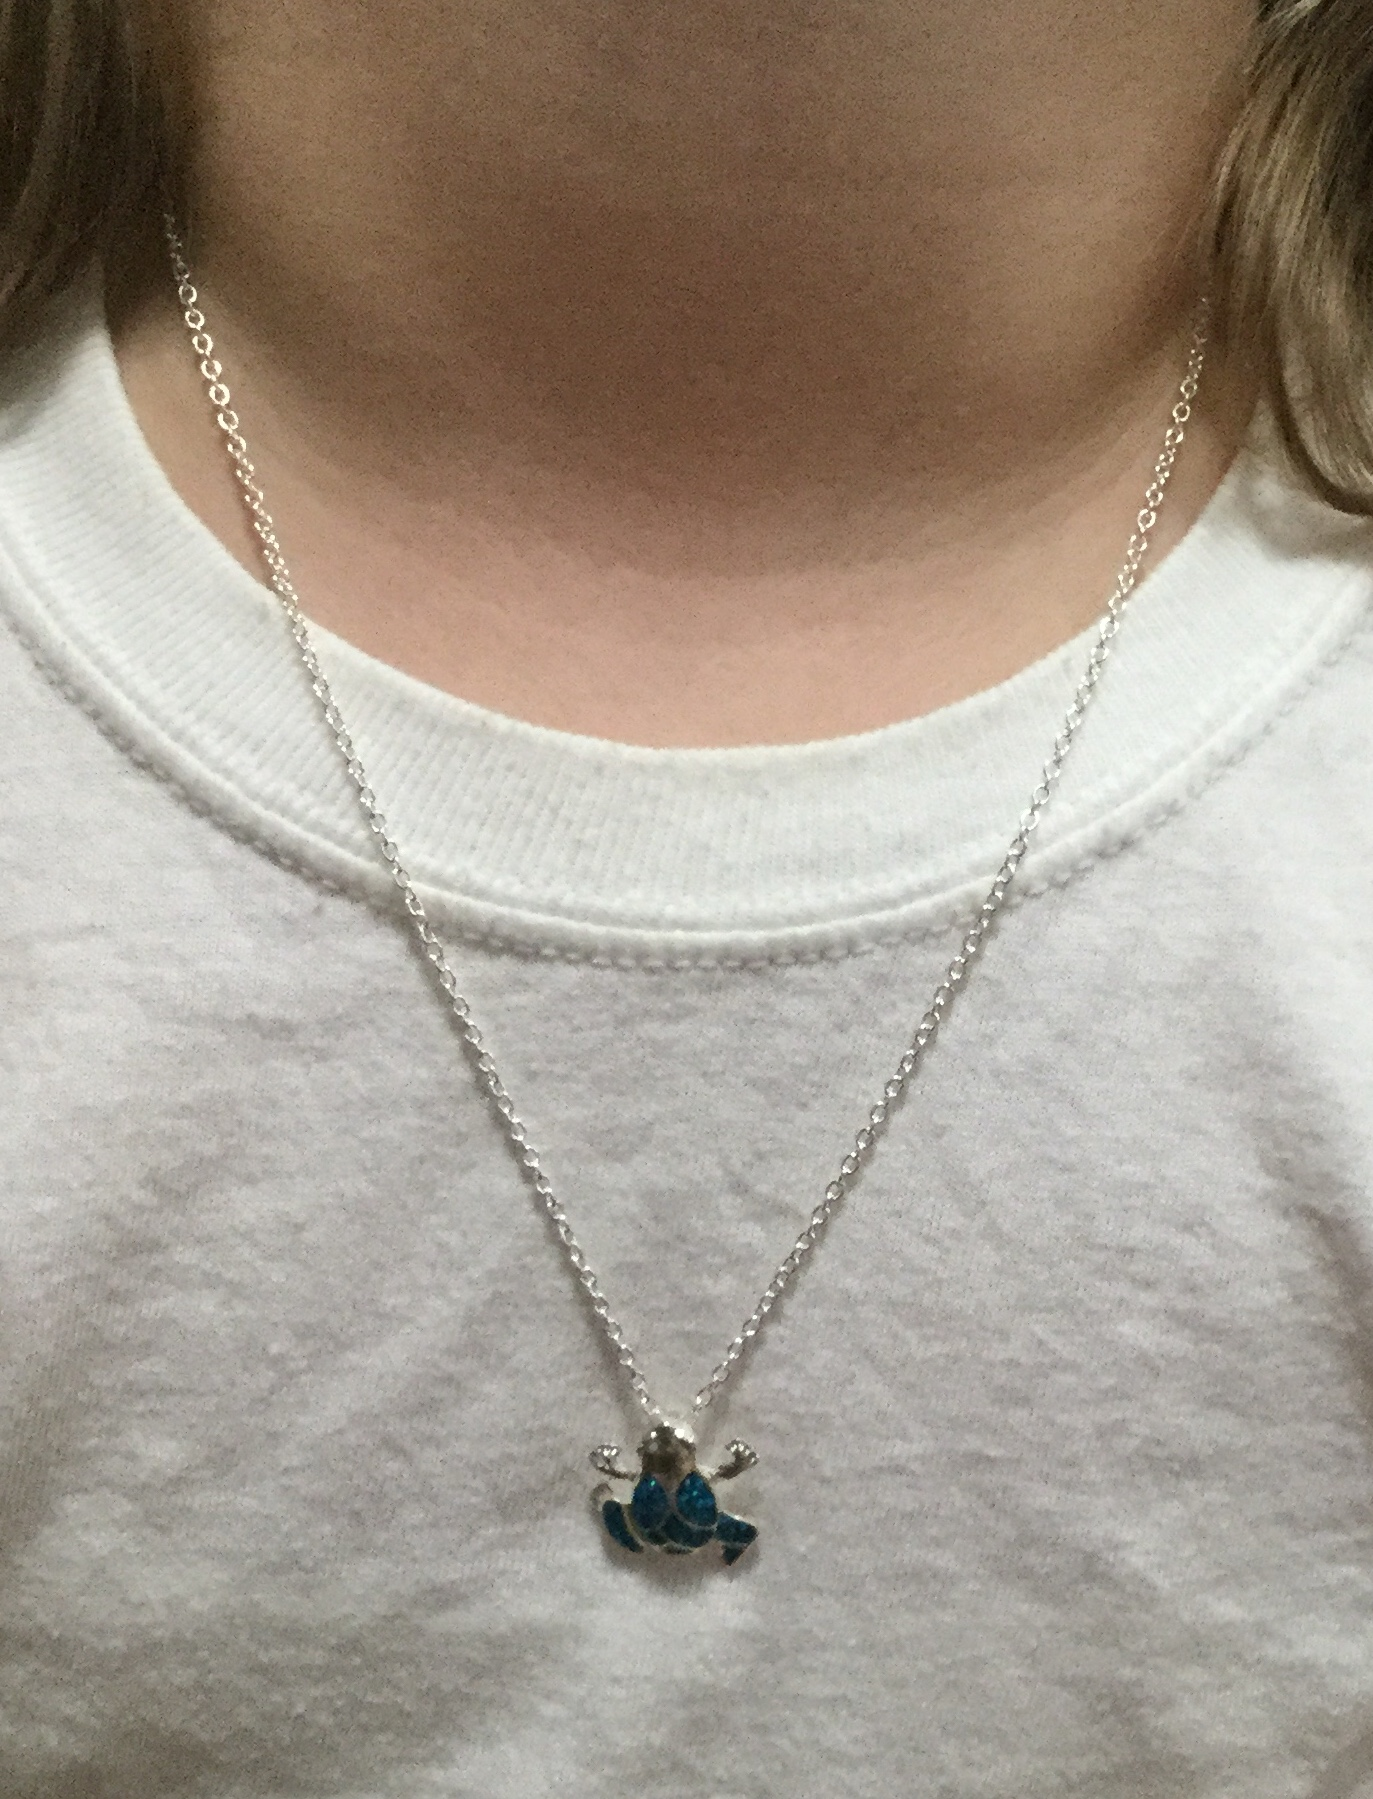 beautiful frog necklace